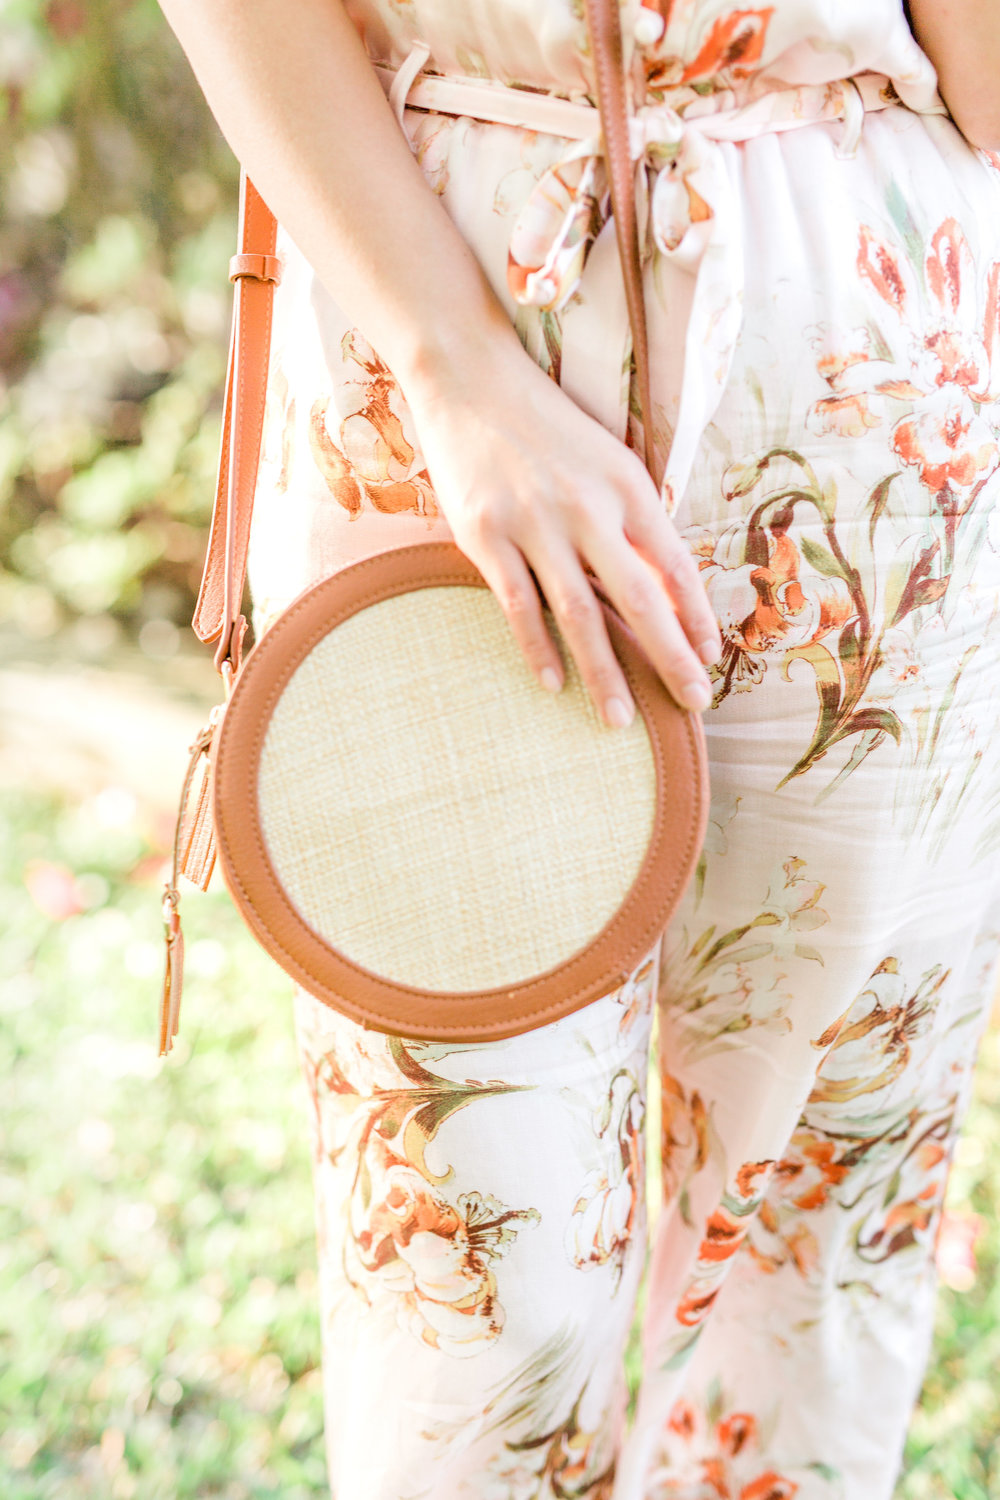 oyfullygreen First Tim Stitch Fix Spring Summer Review with Coupon Code Round Straw Crossbody Bag.jpg